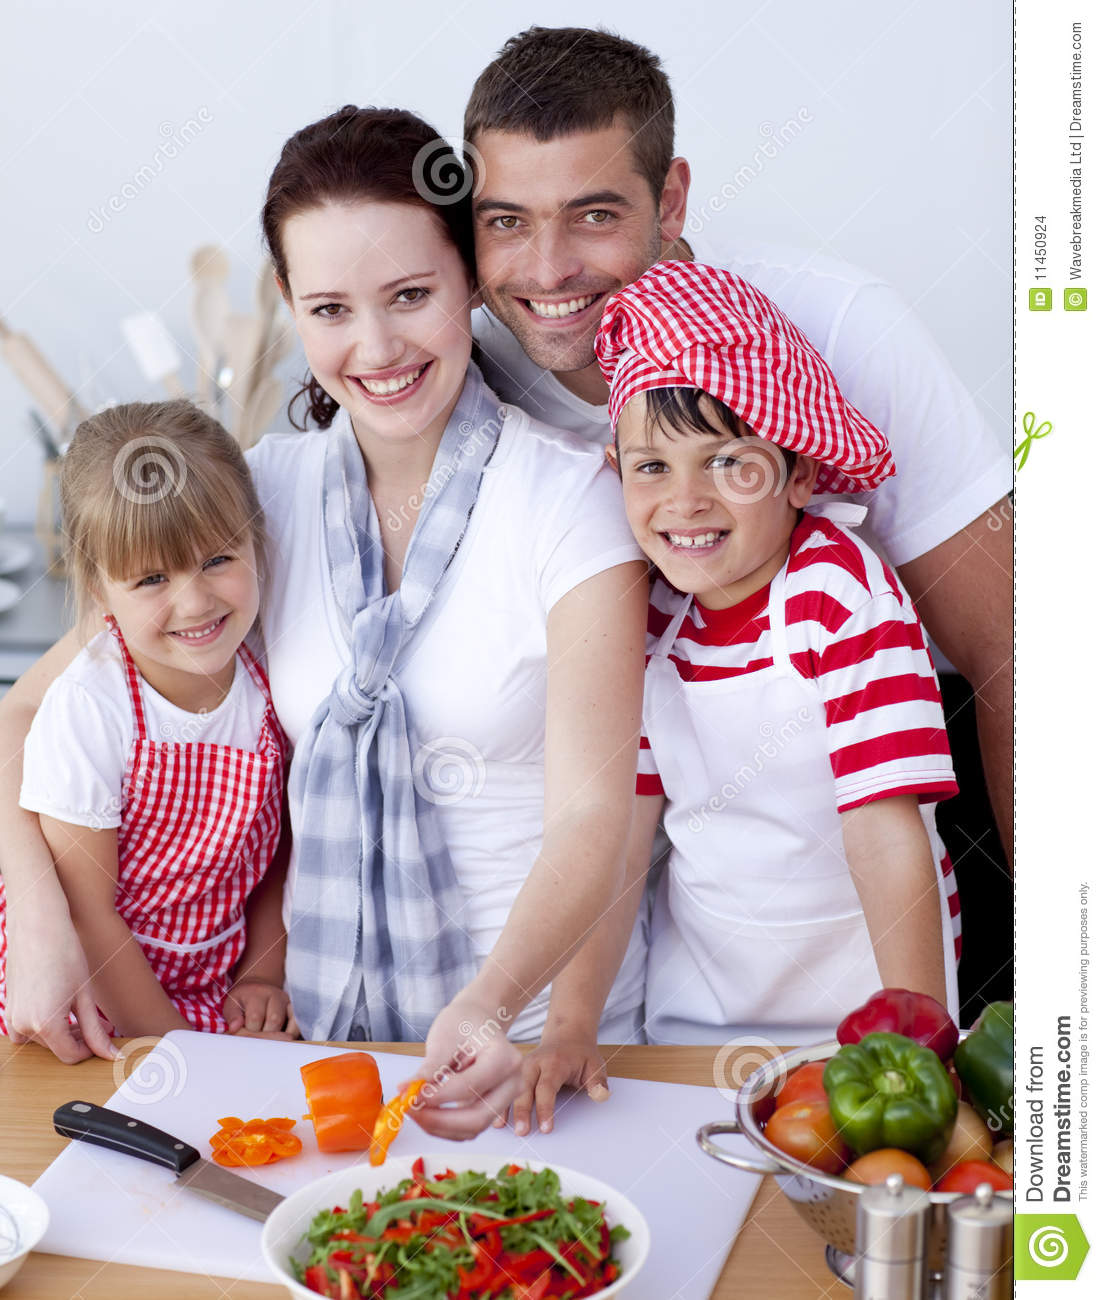 Family cutting colourful vegetables in kitchen